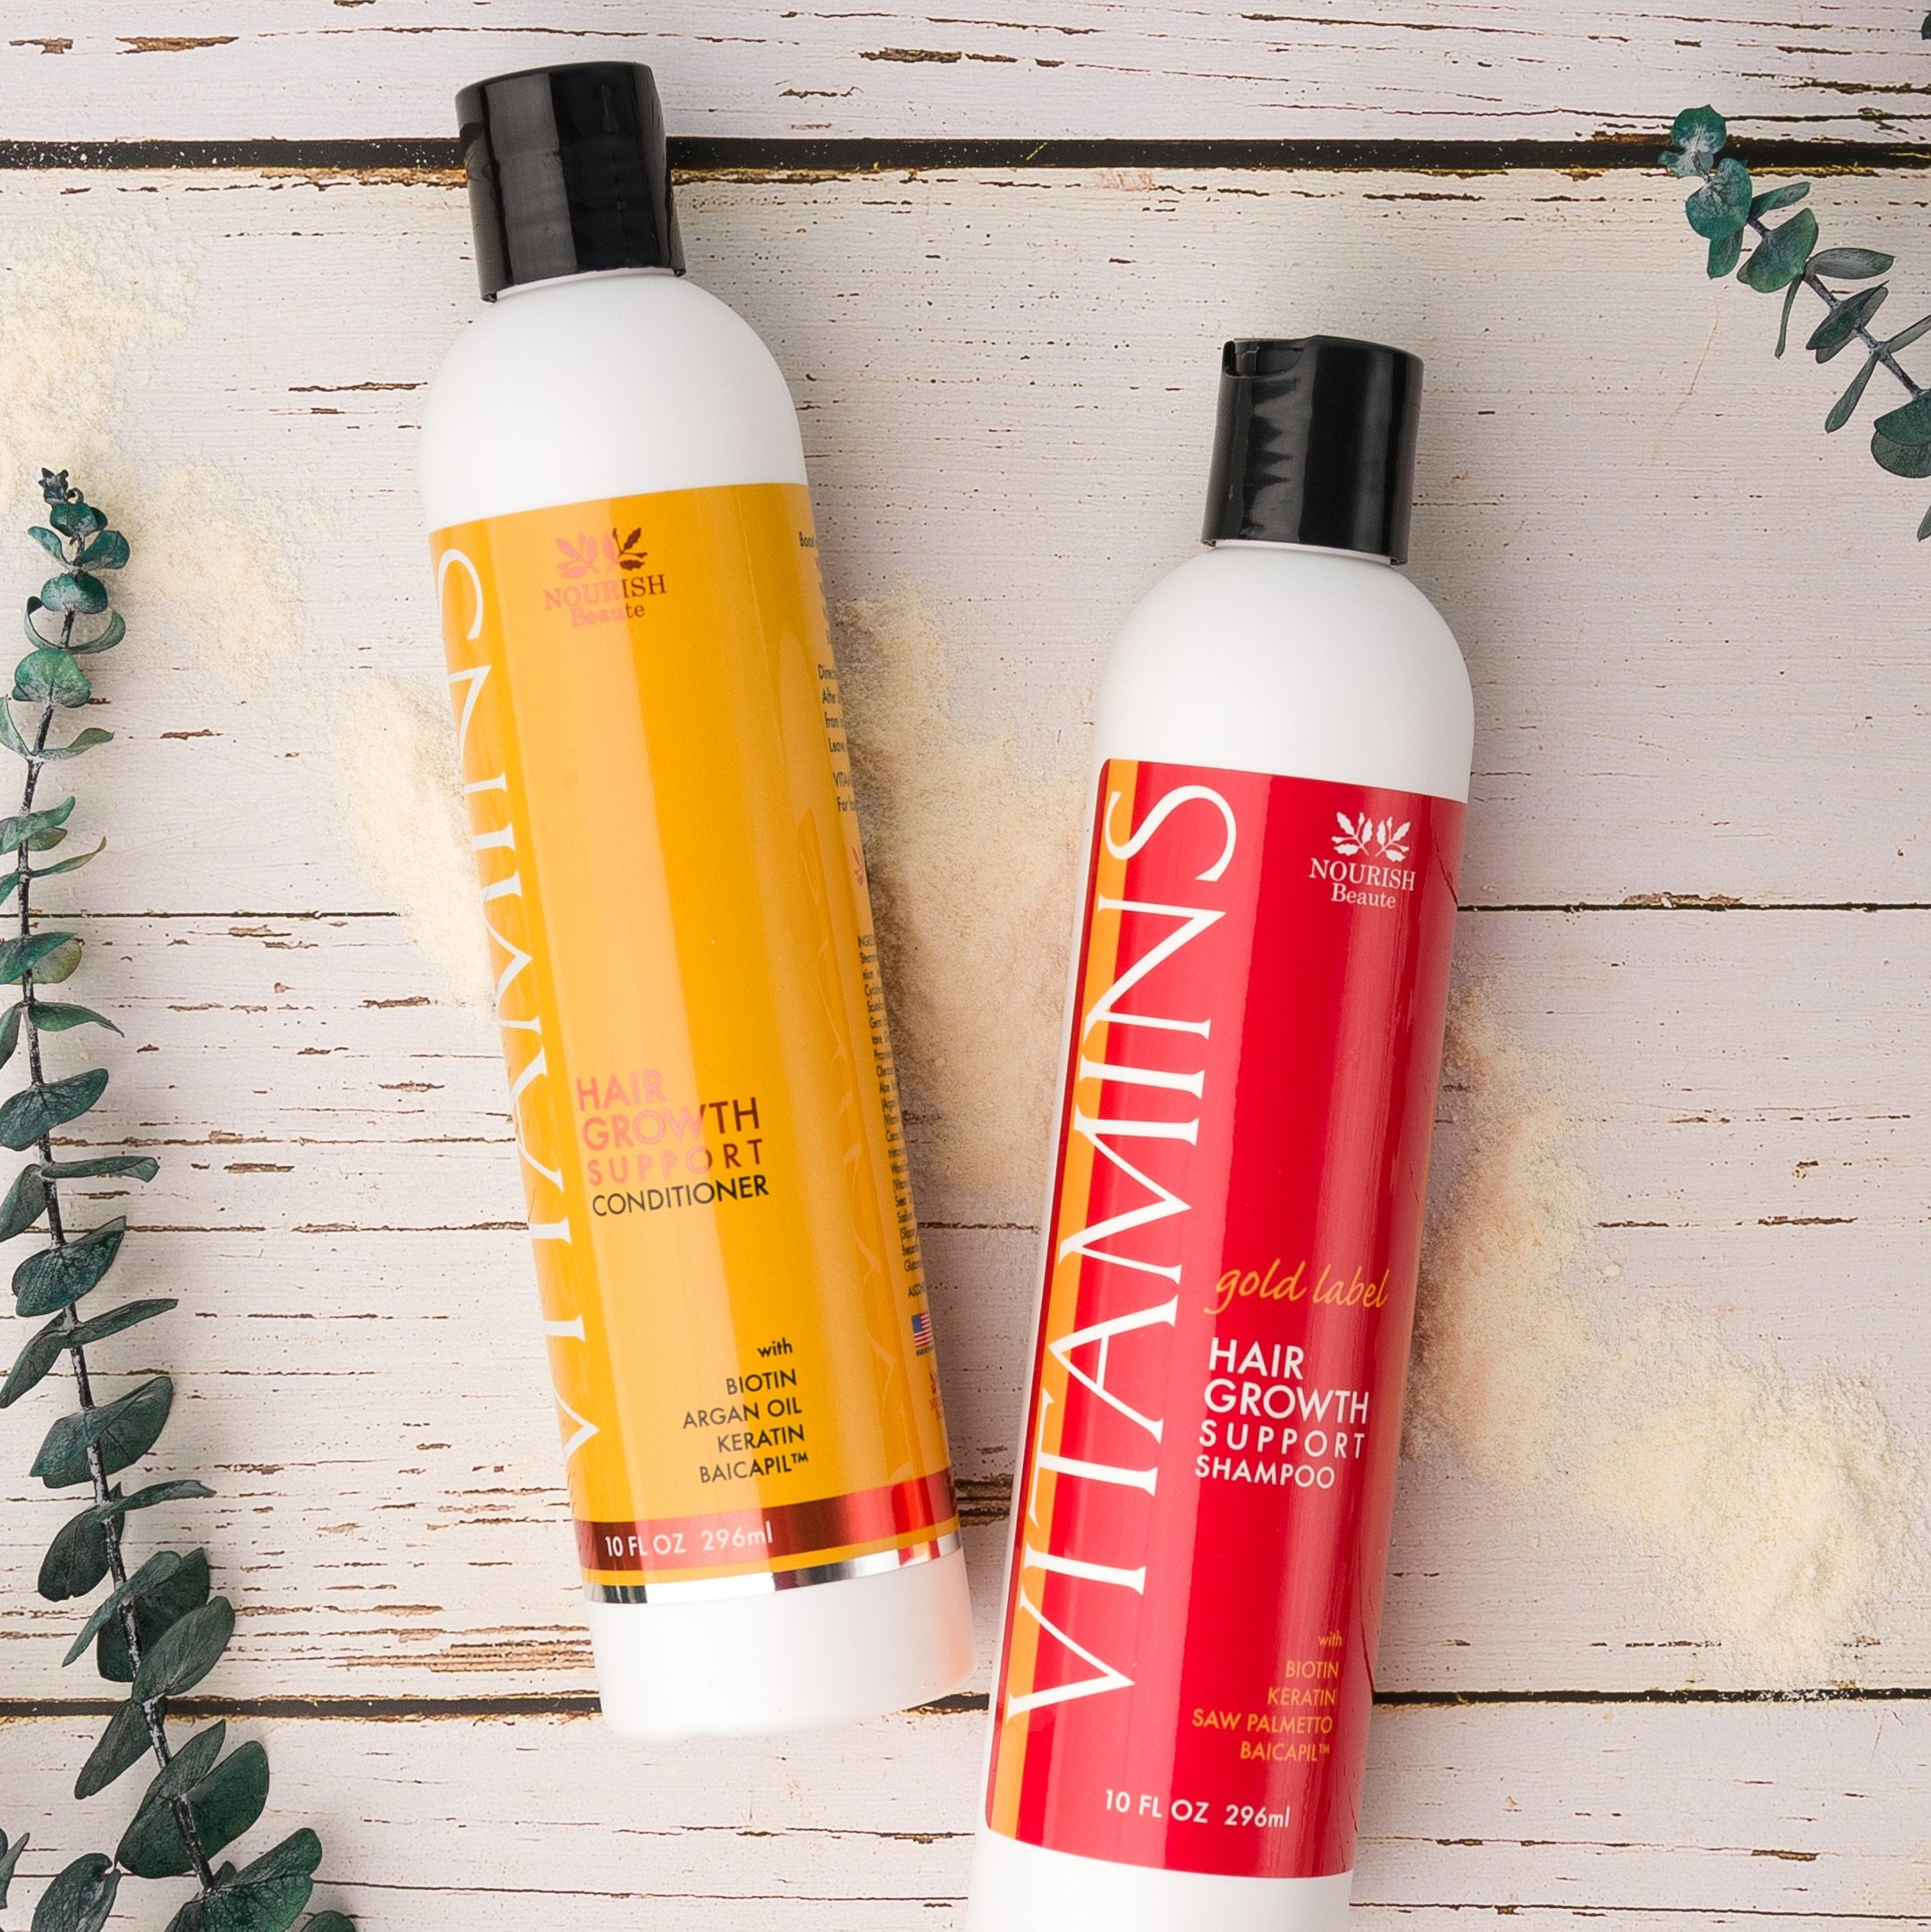 Premium Vitamins Hair Growth Support Shampoo and Conditioner